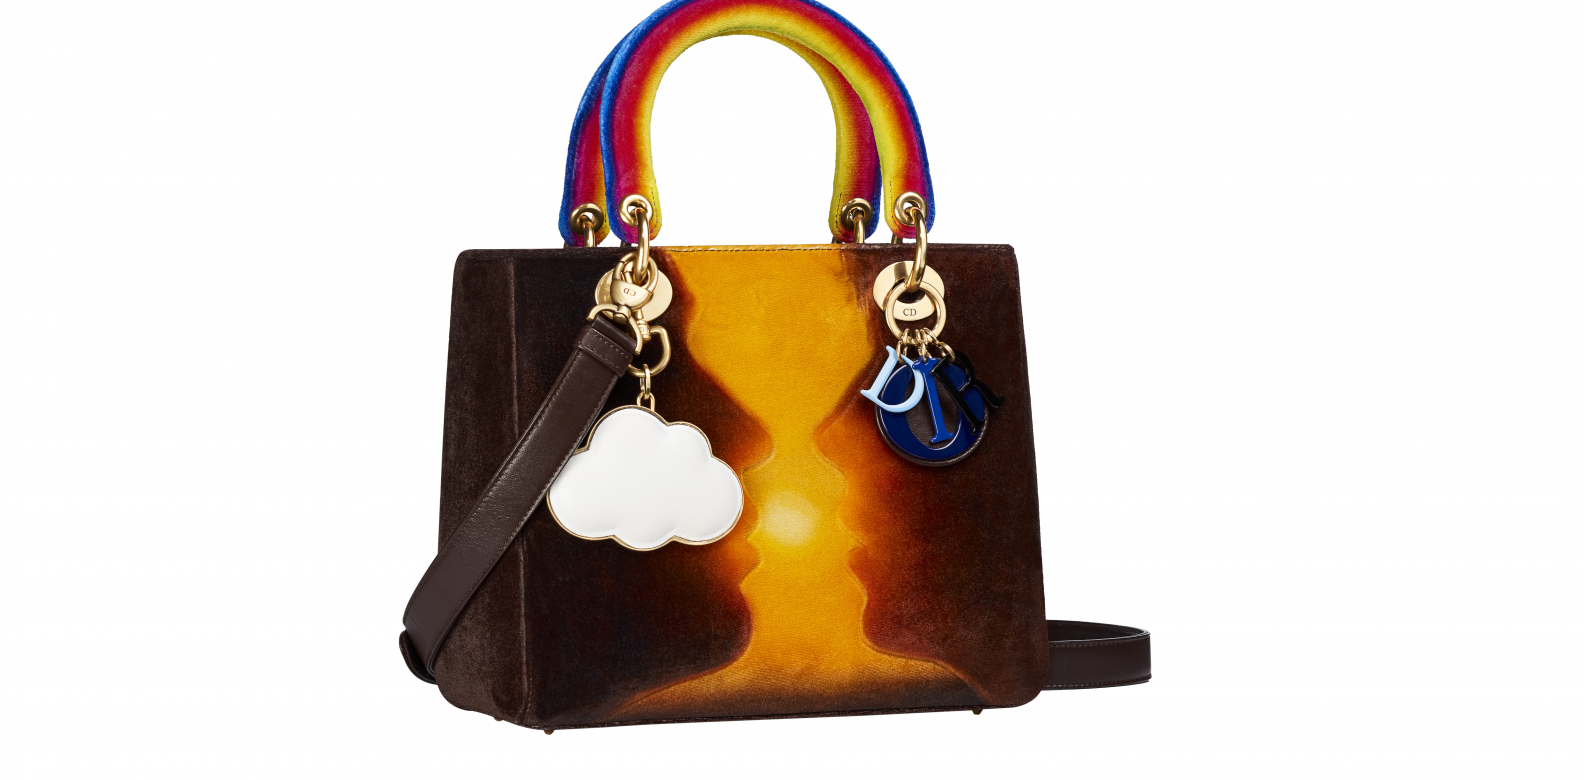 The Lady Dior bag designed by Friedrich Kunath - Dior Lady Art #2. Photo courtesy of Frederic Leclere